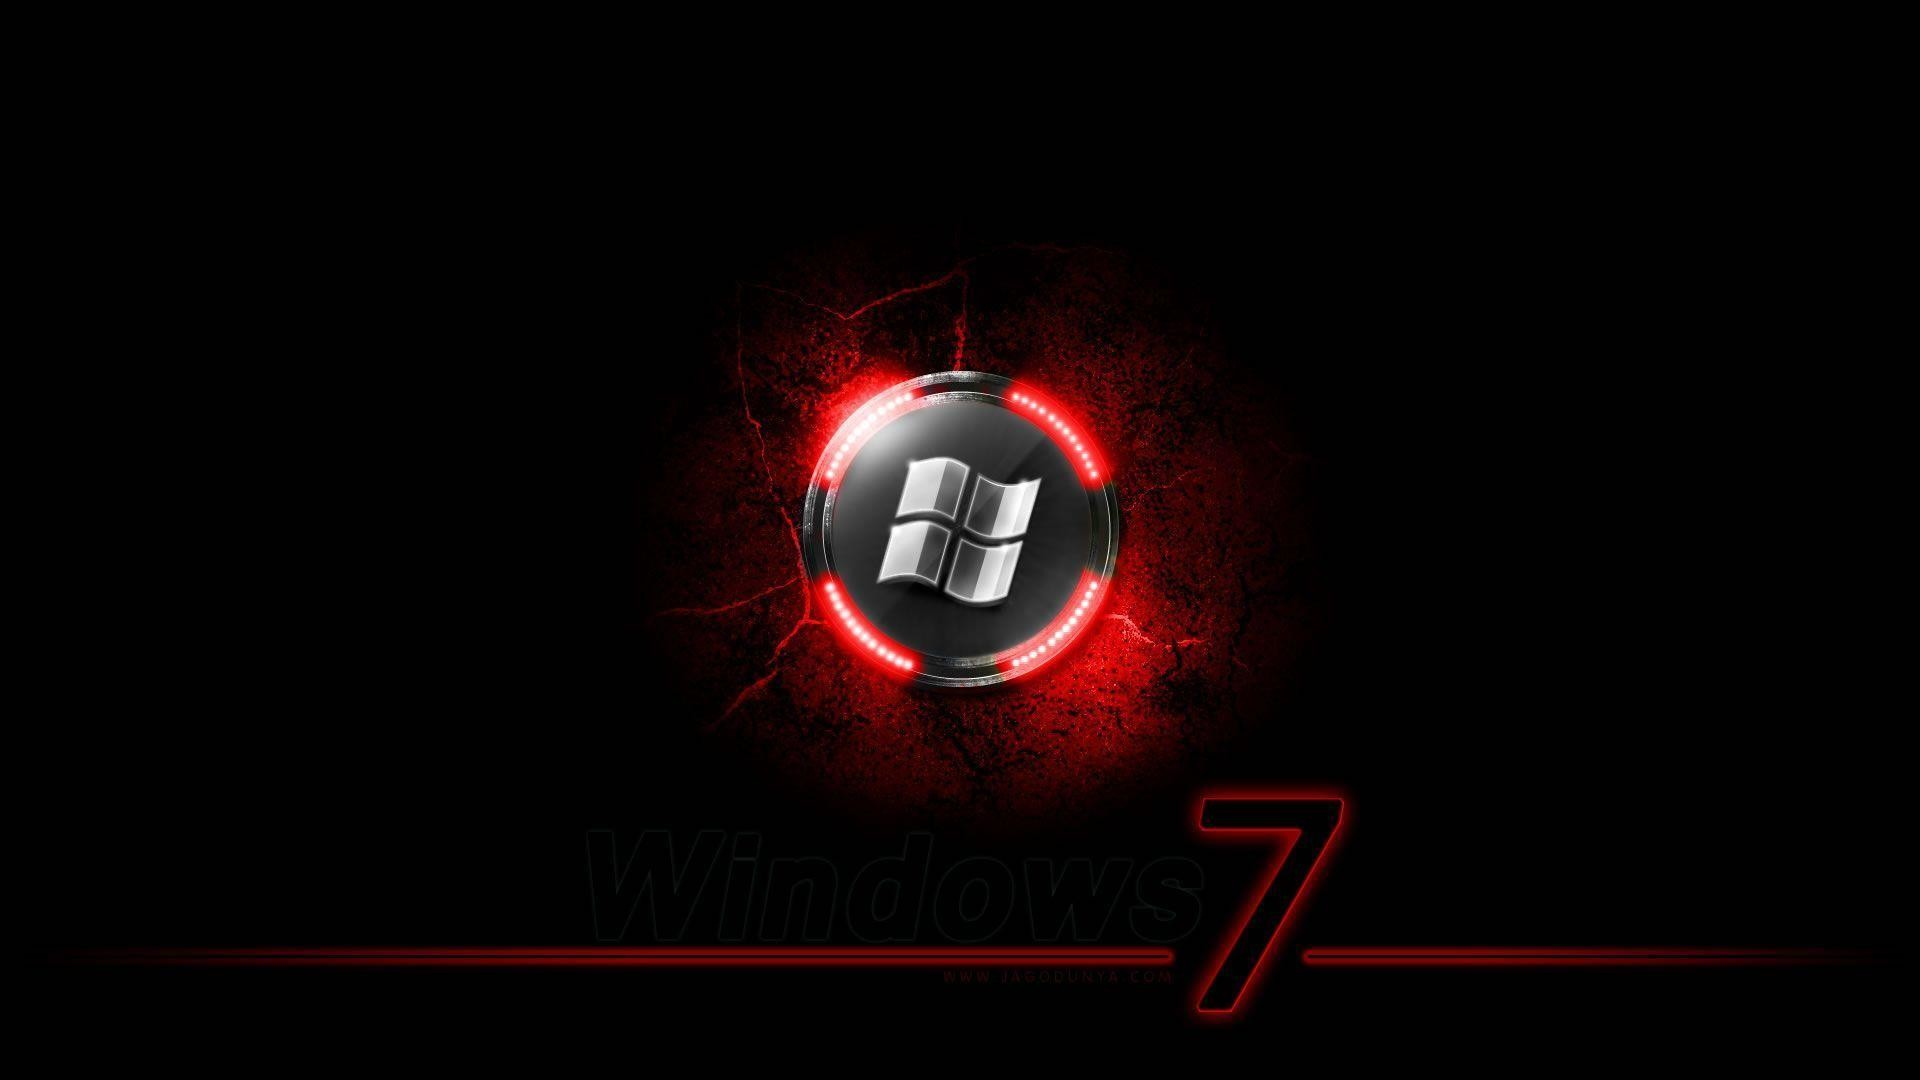 Windows 7 Hd Wallpapers 78 Images